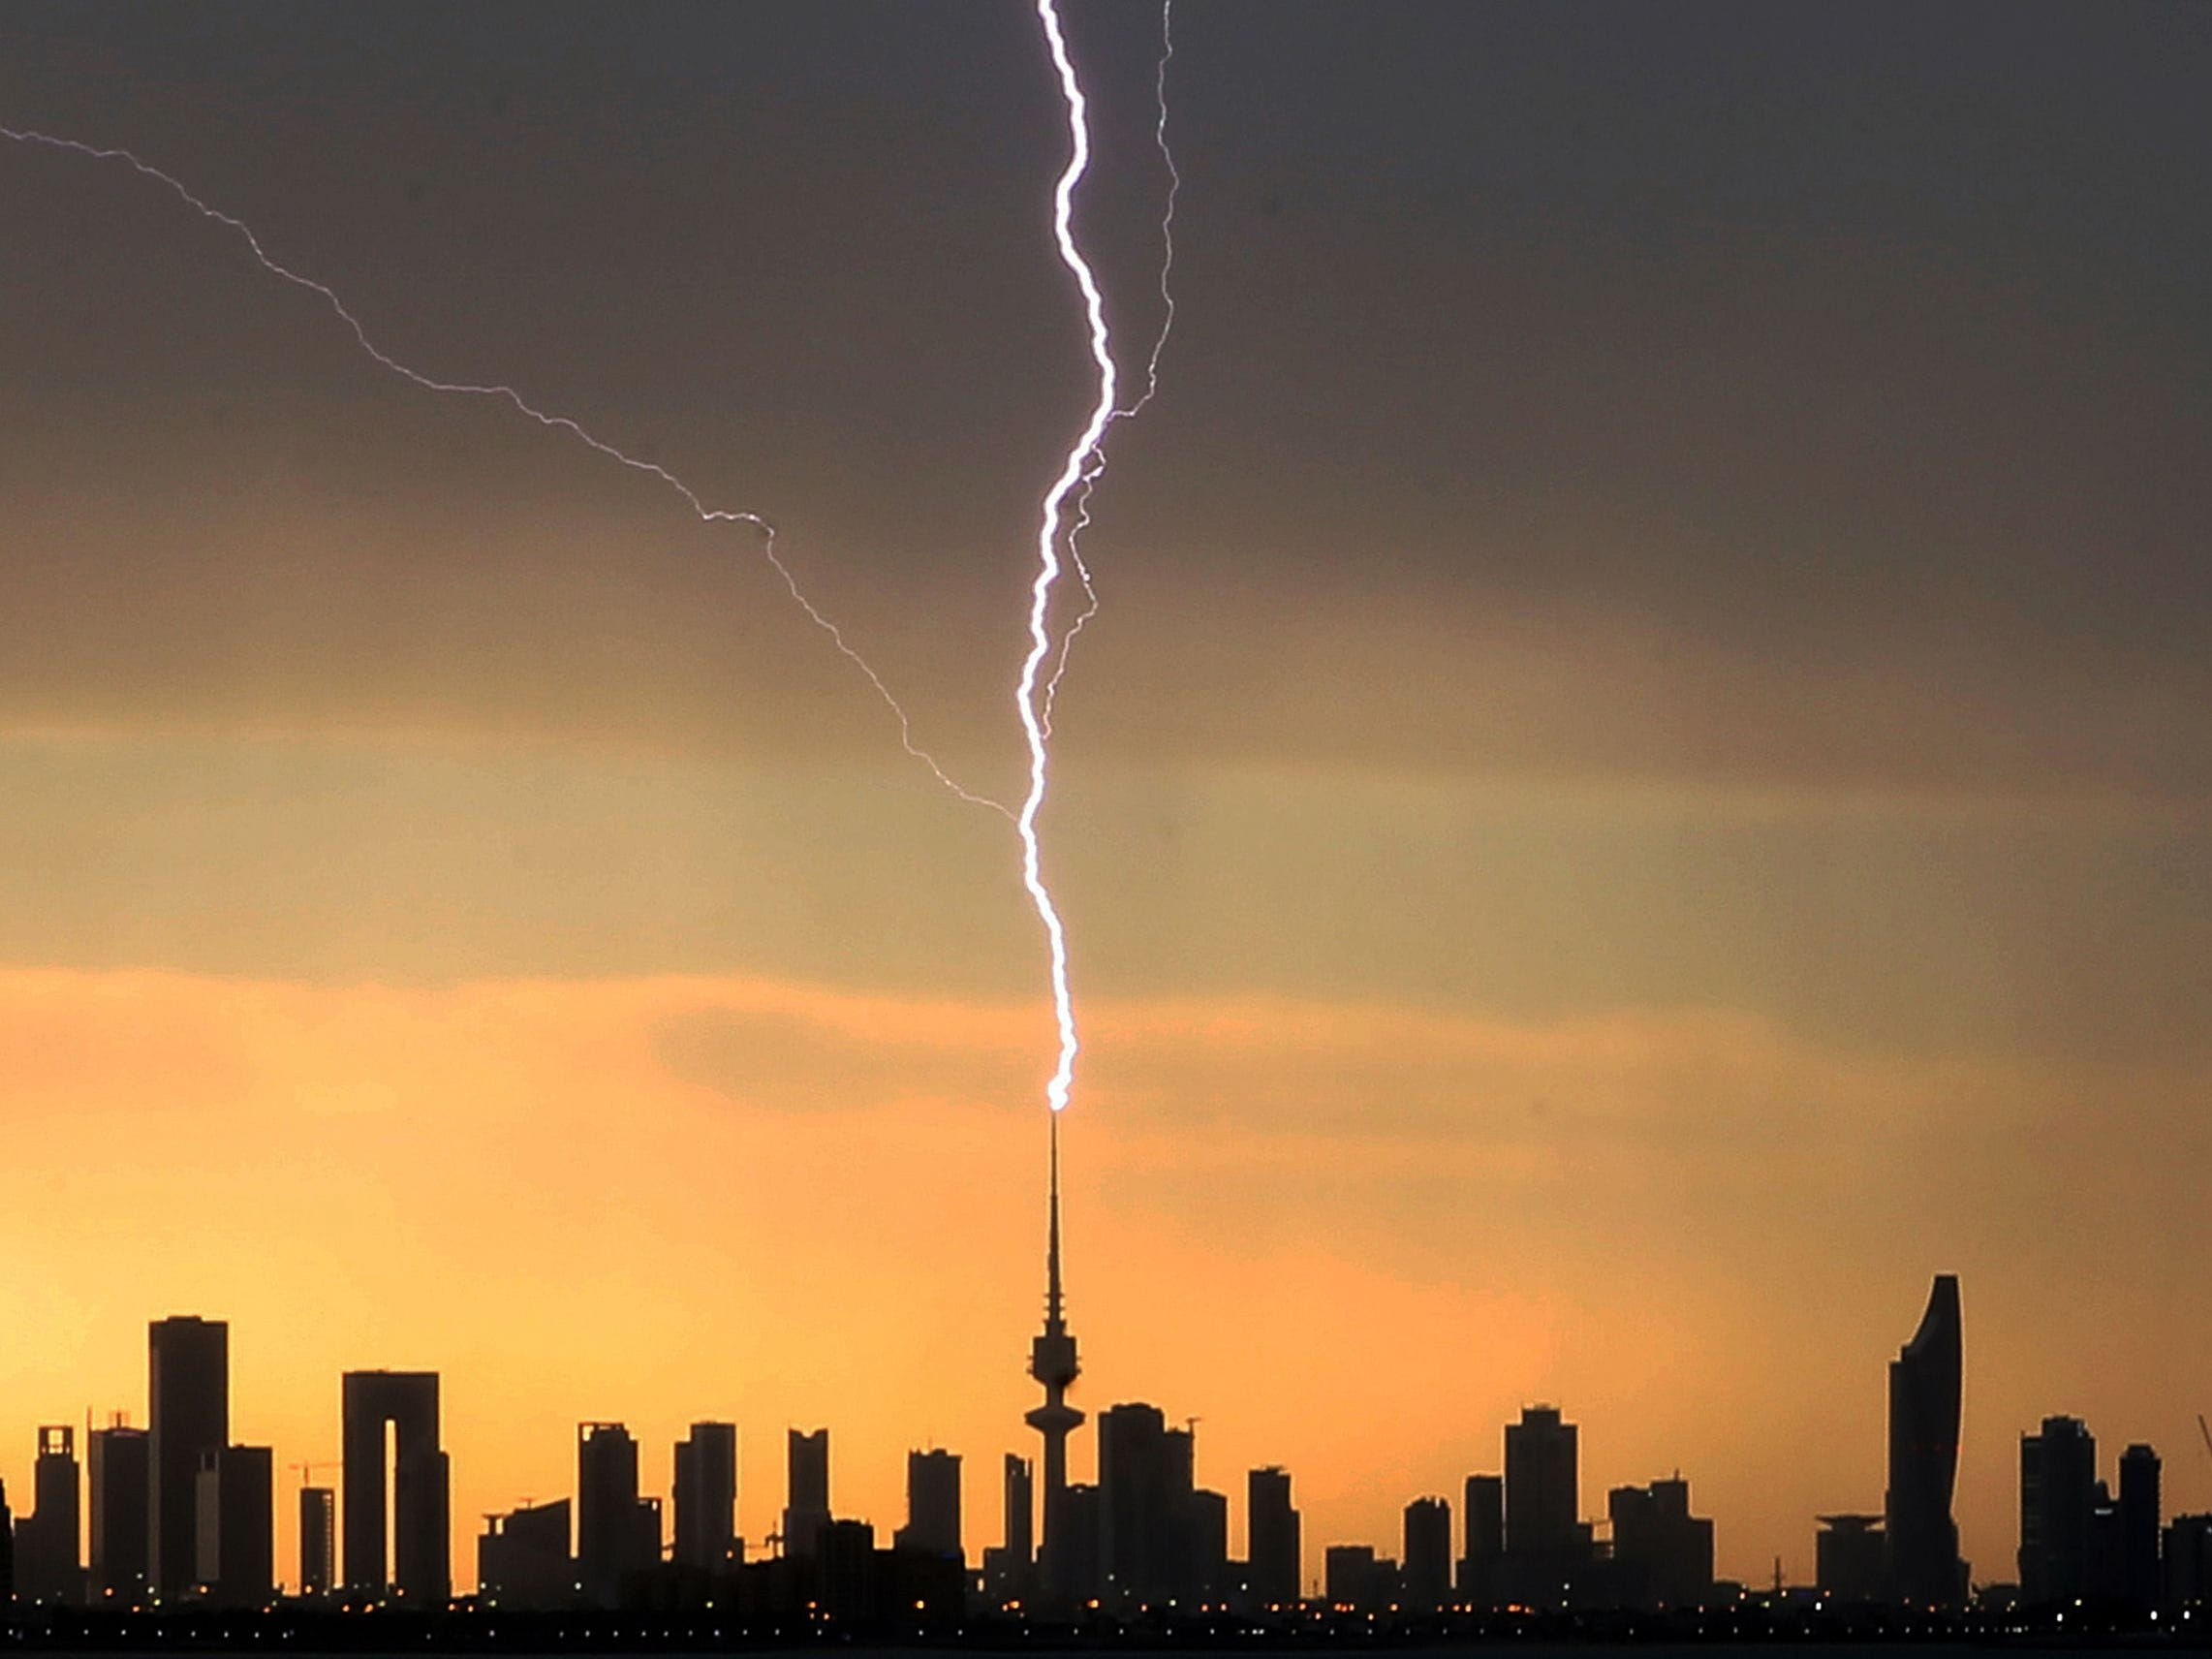 Lightning strikes the liberation tower in Kuwait City during a thunder storm on April 5, 2019.